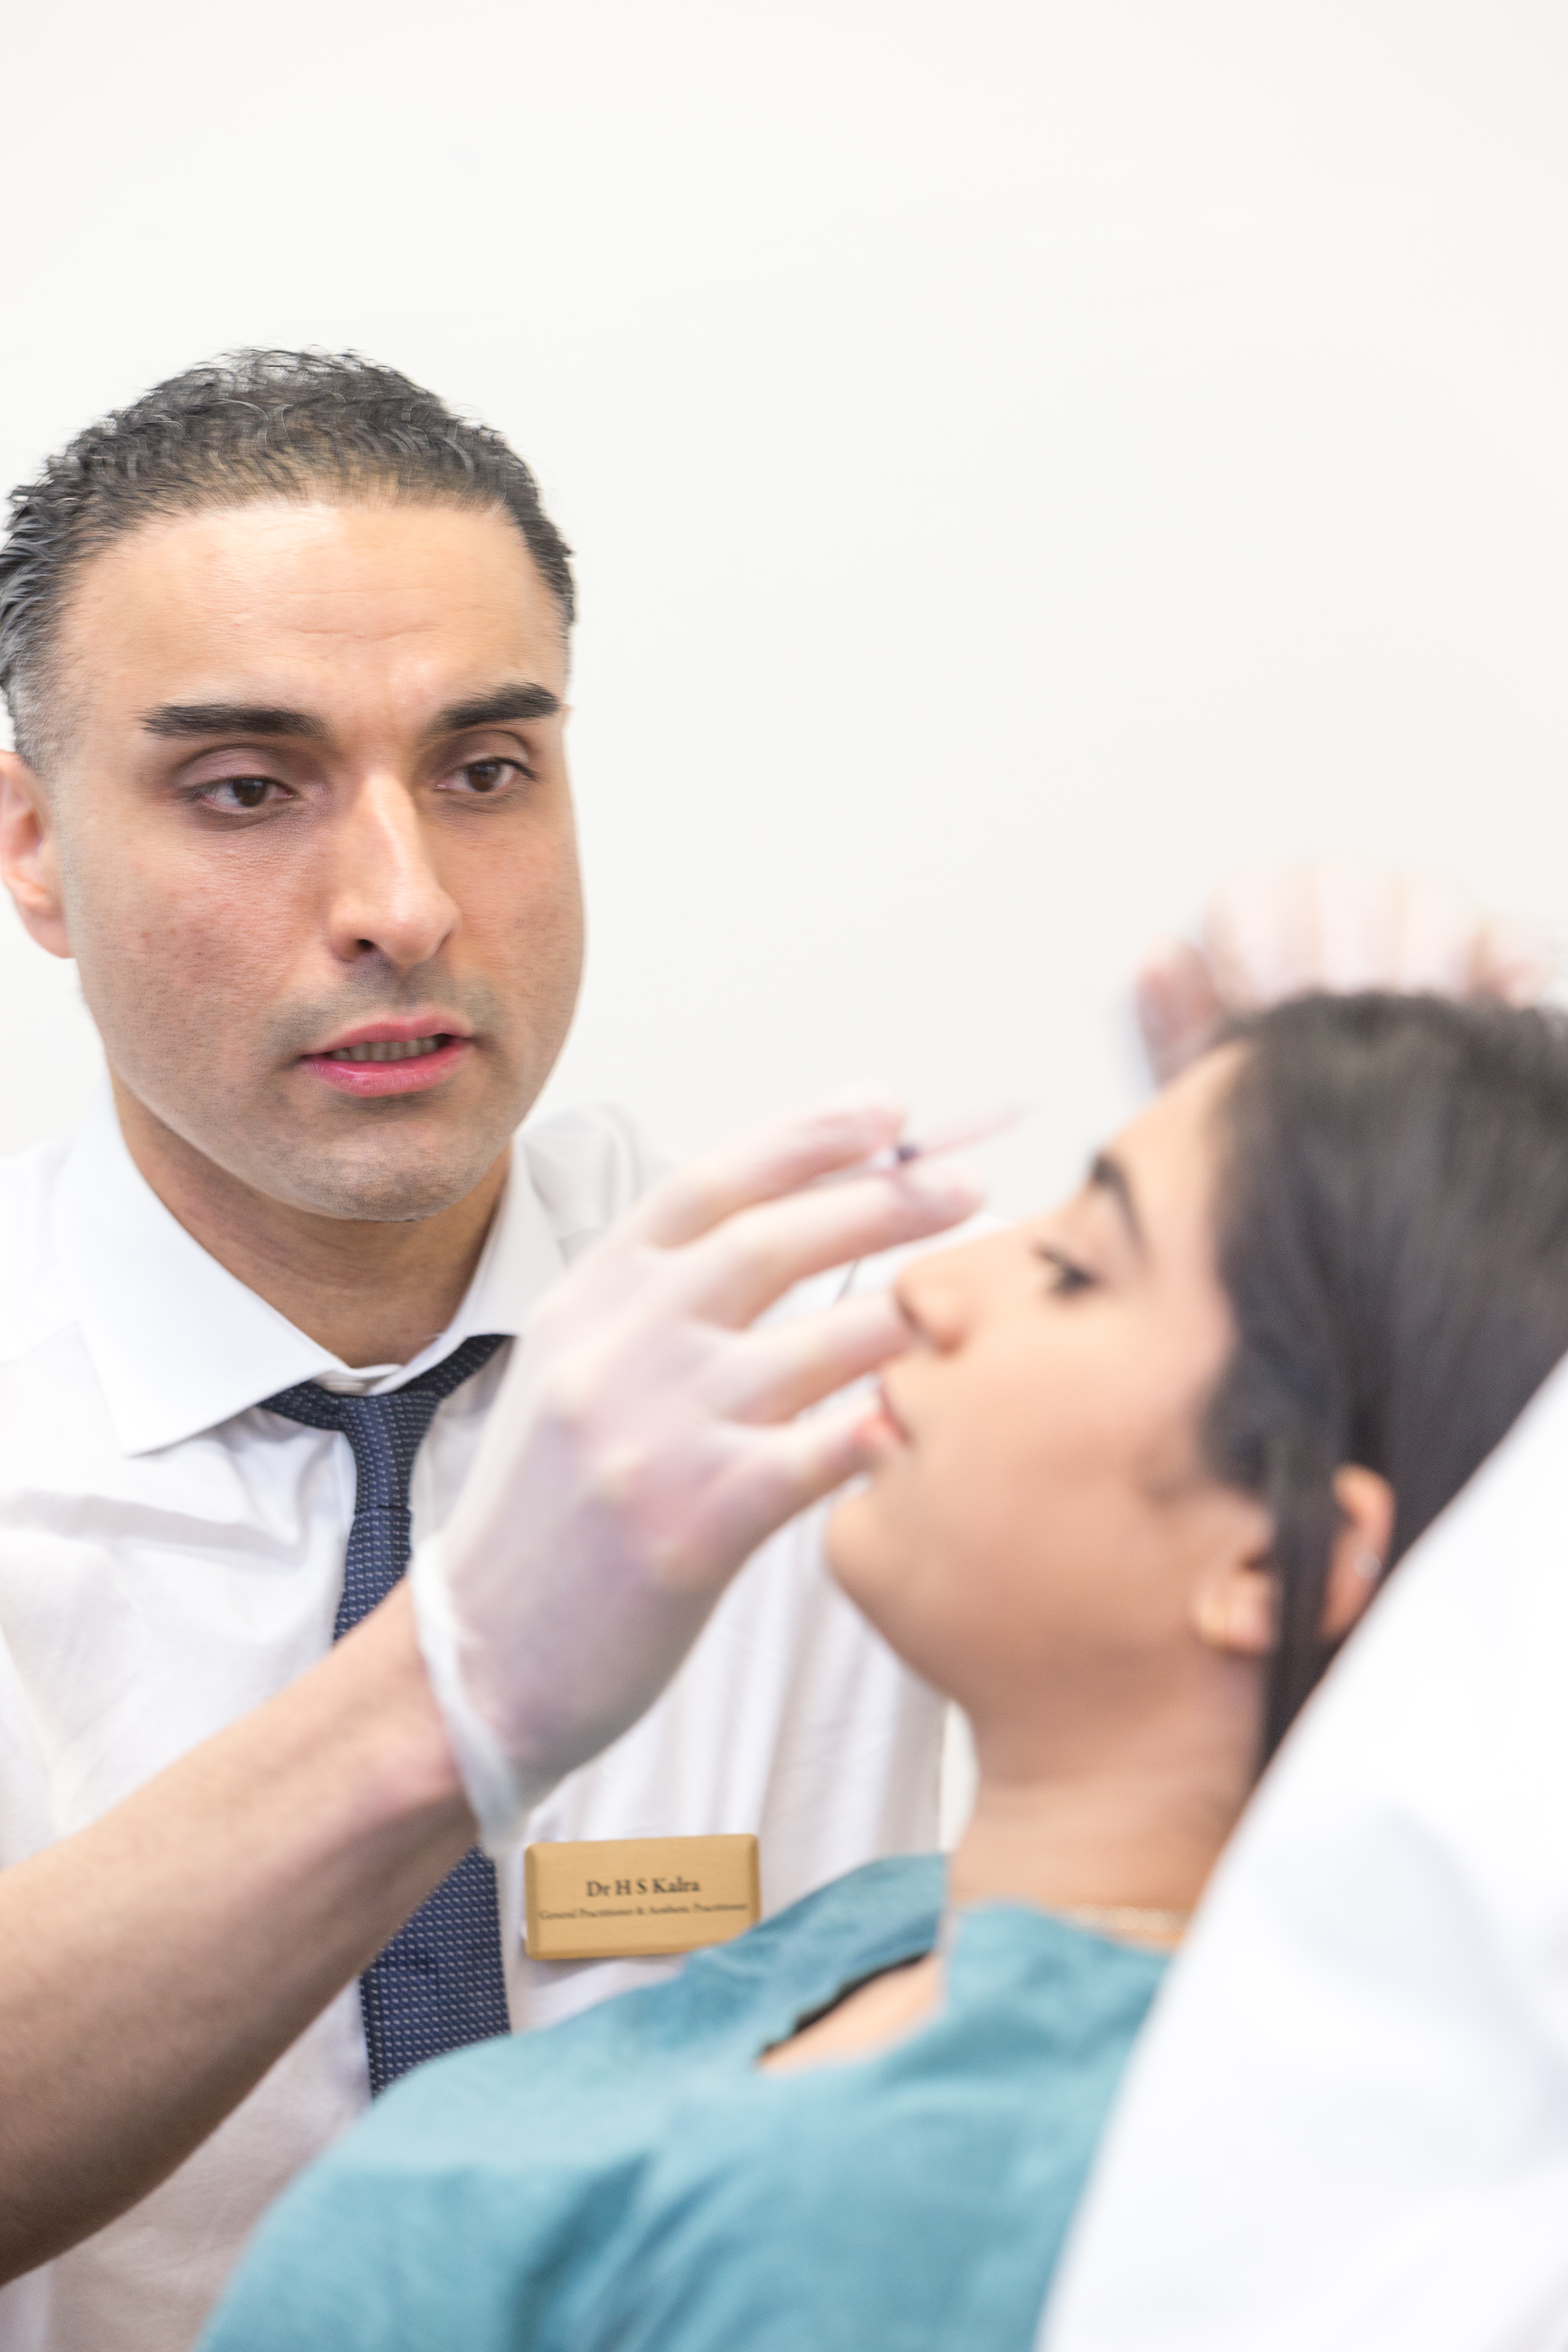 Dr Karla treating a patient with botox injection